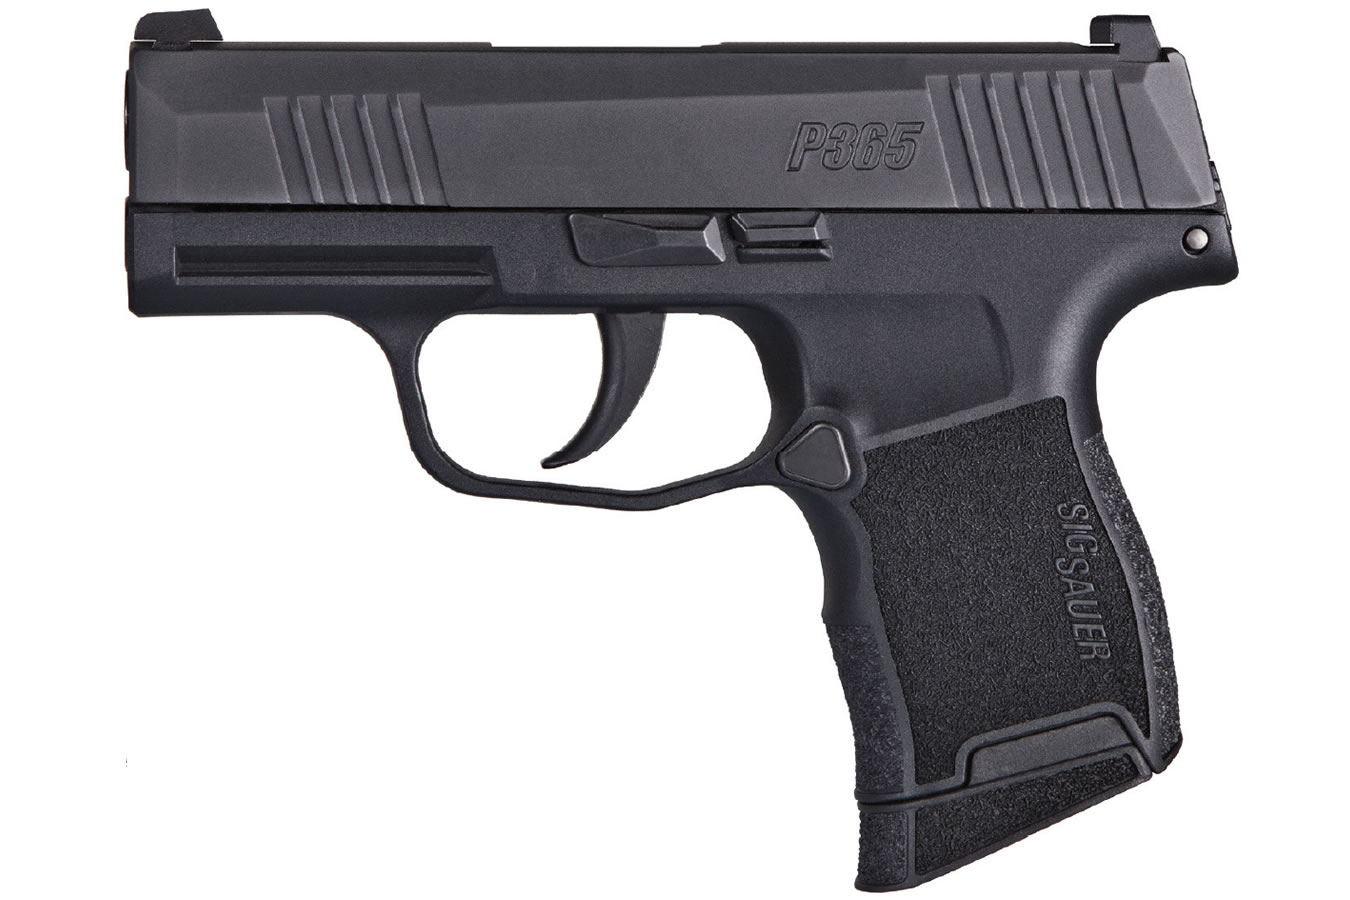 Sig Sauer P365 9mm Micro Compact Striker Fired Pistol Le